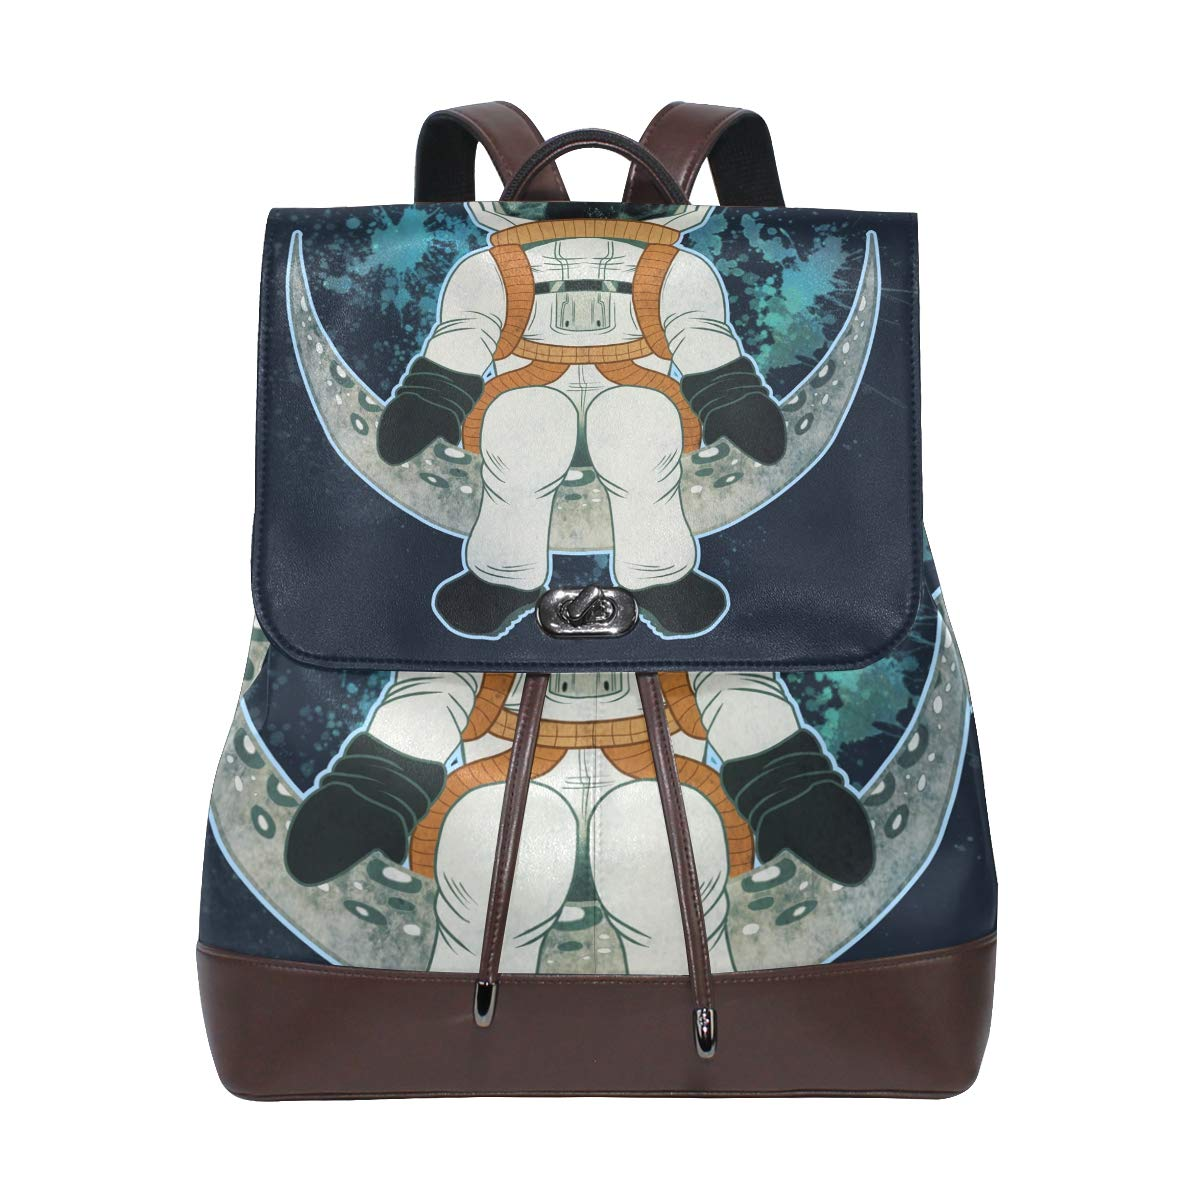 PU Leather Shoulder Bag,Spaceman Sitting On The Moon Backpack,Portable Travel School Rucksack,Satchel with Top Handle